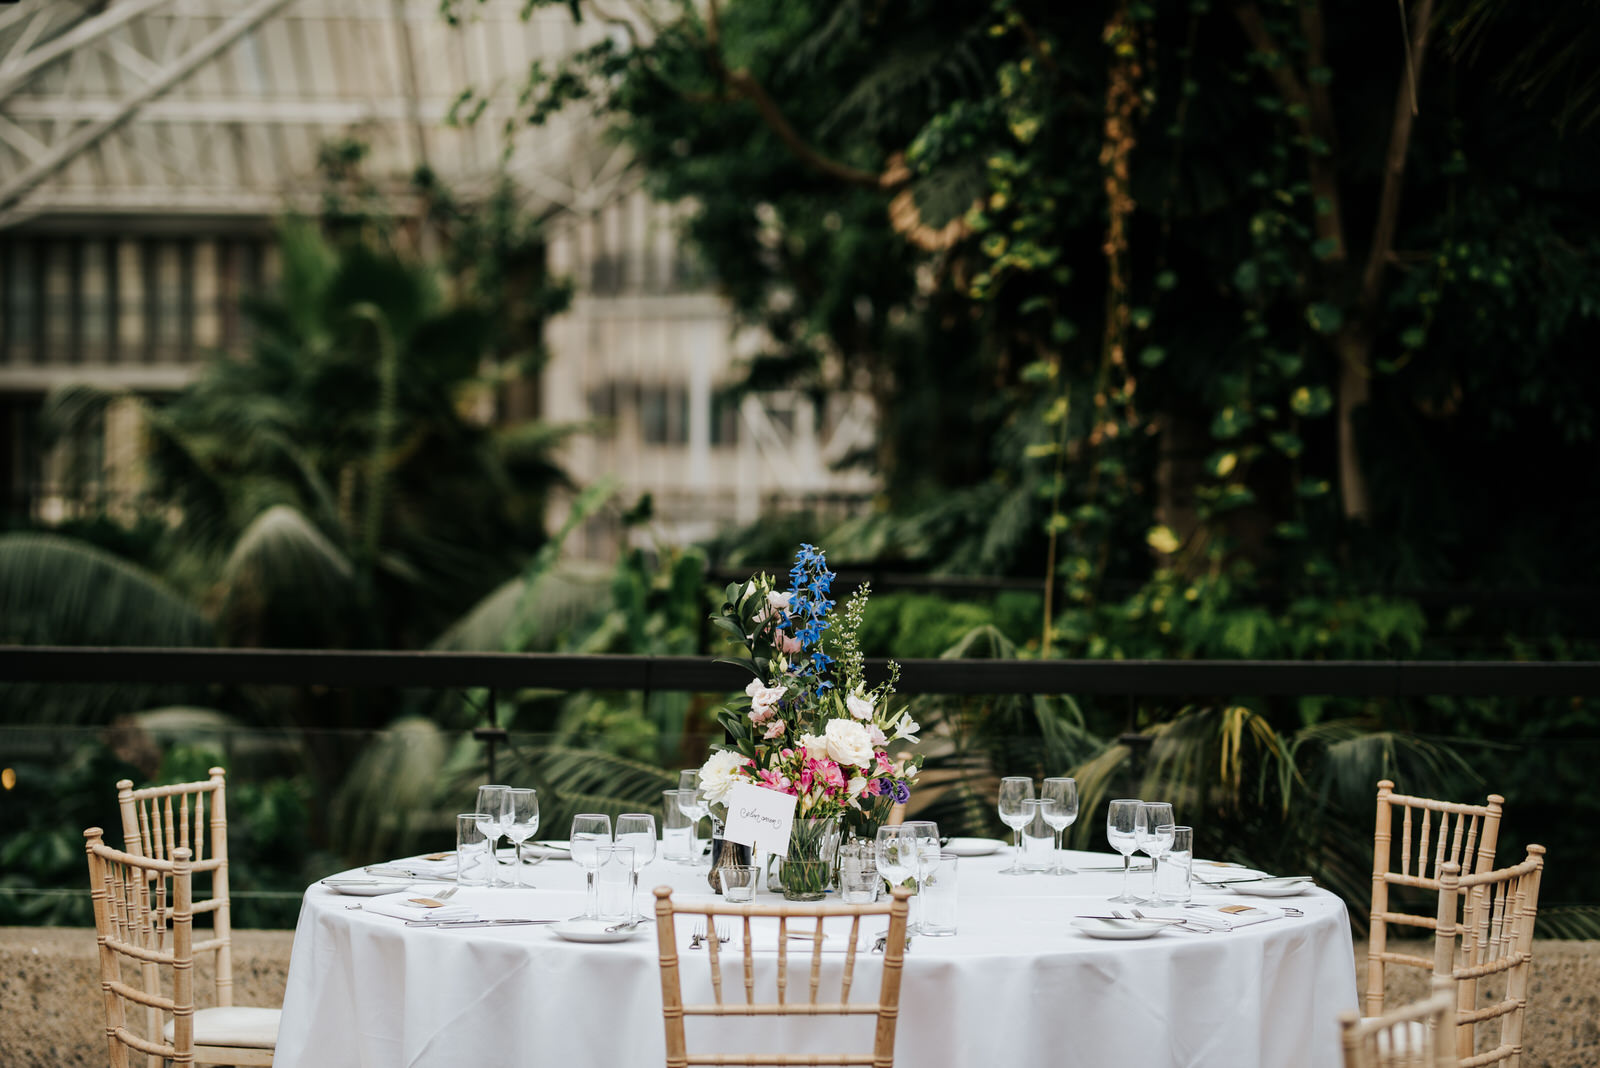 Photograph of table set-up at barbican centre wedding venue with